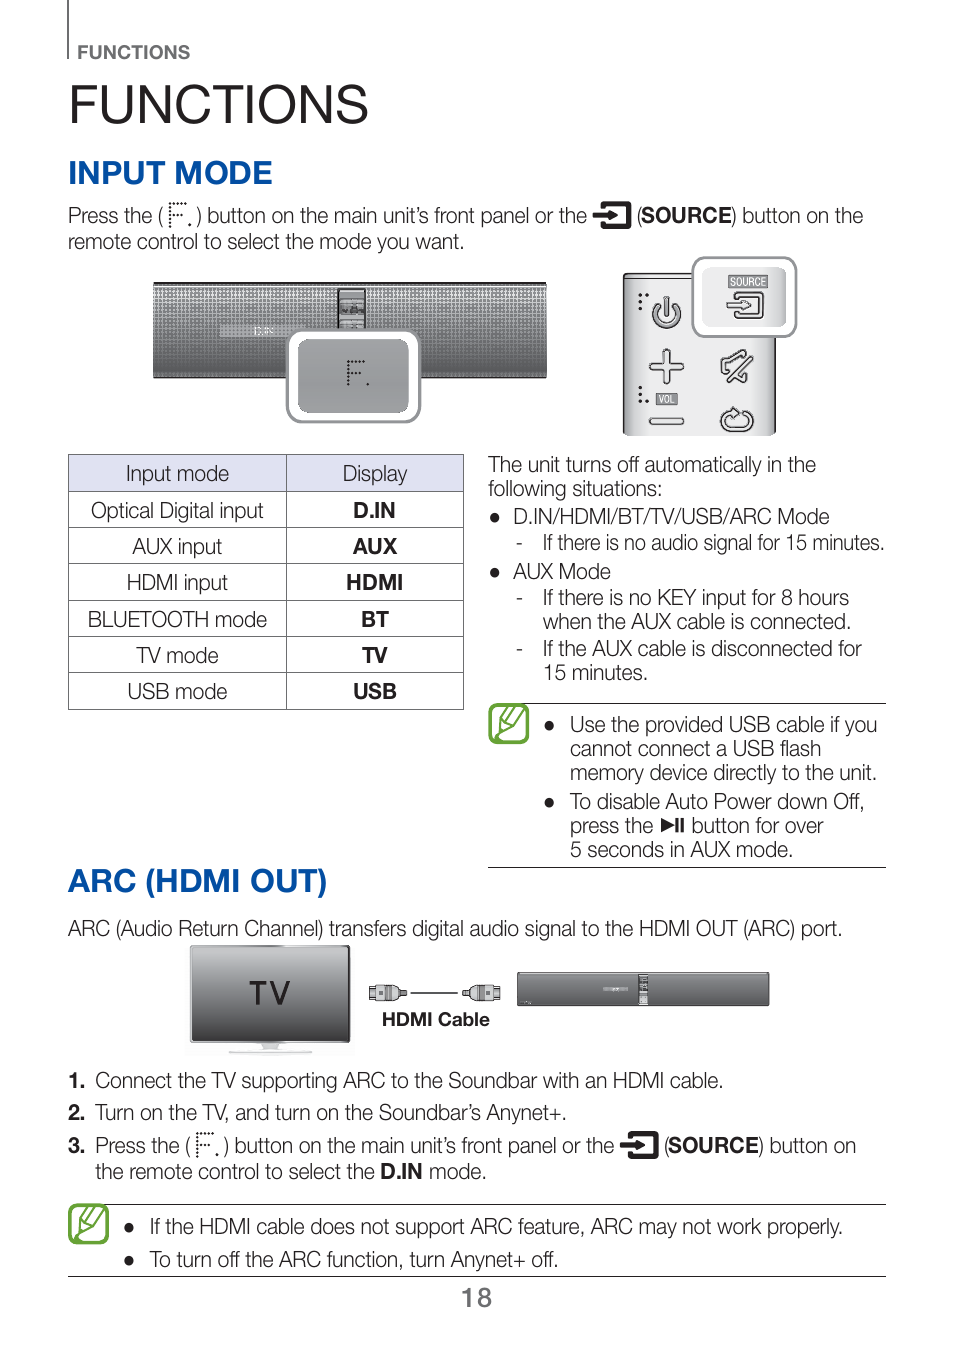 Functions, Arc (hdmi out), Input mode | Samsung HW-H750-ZA User